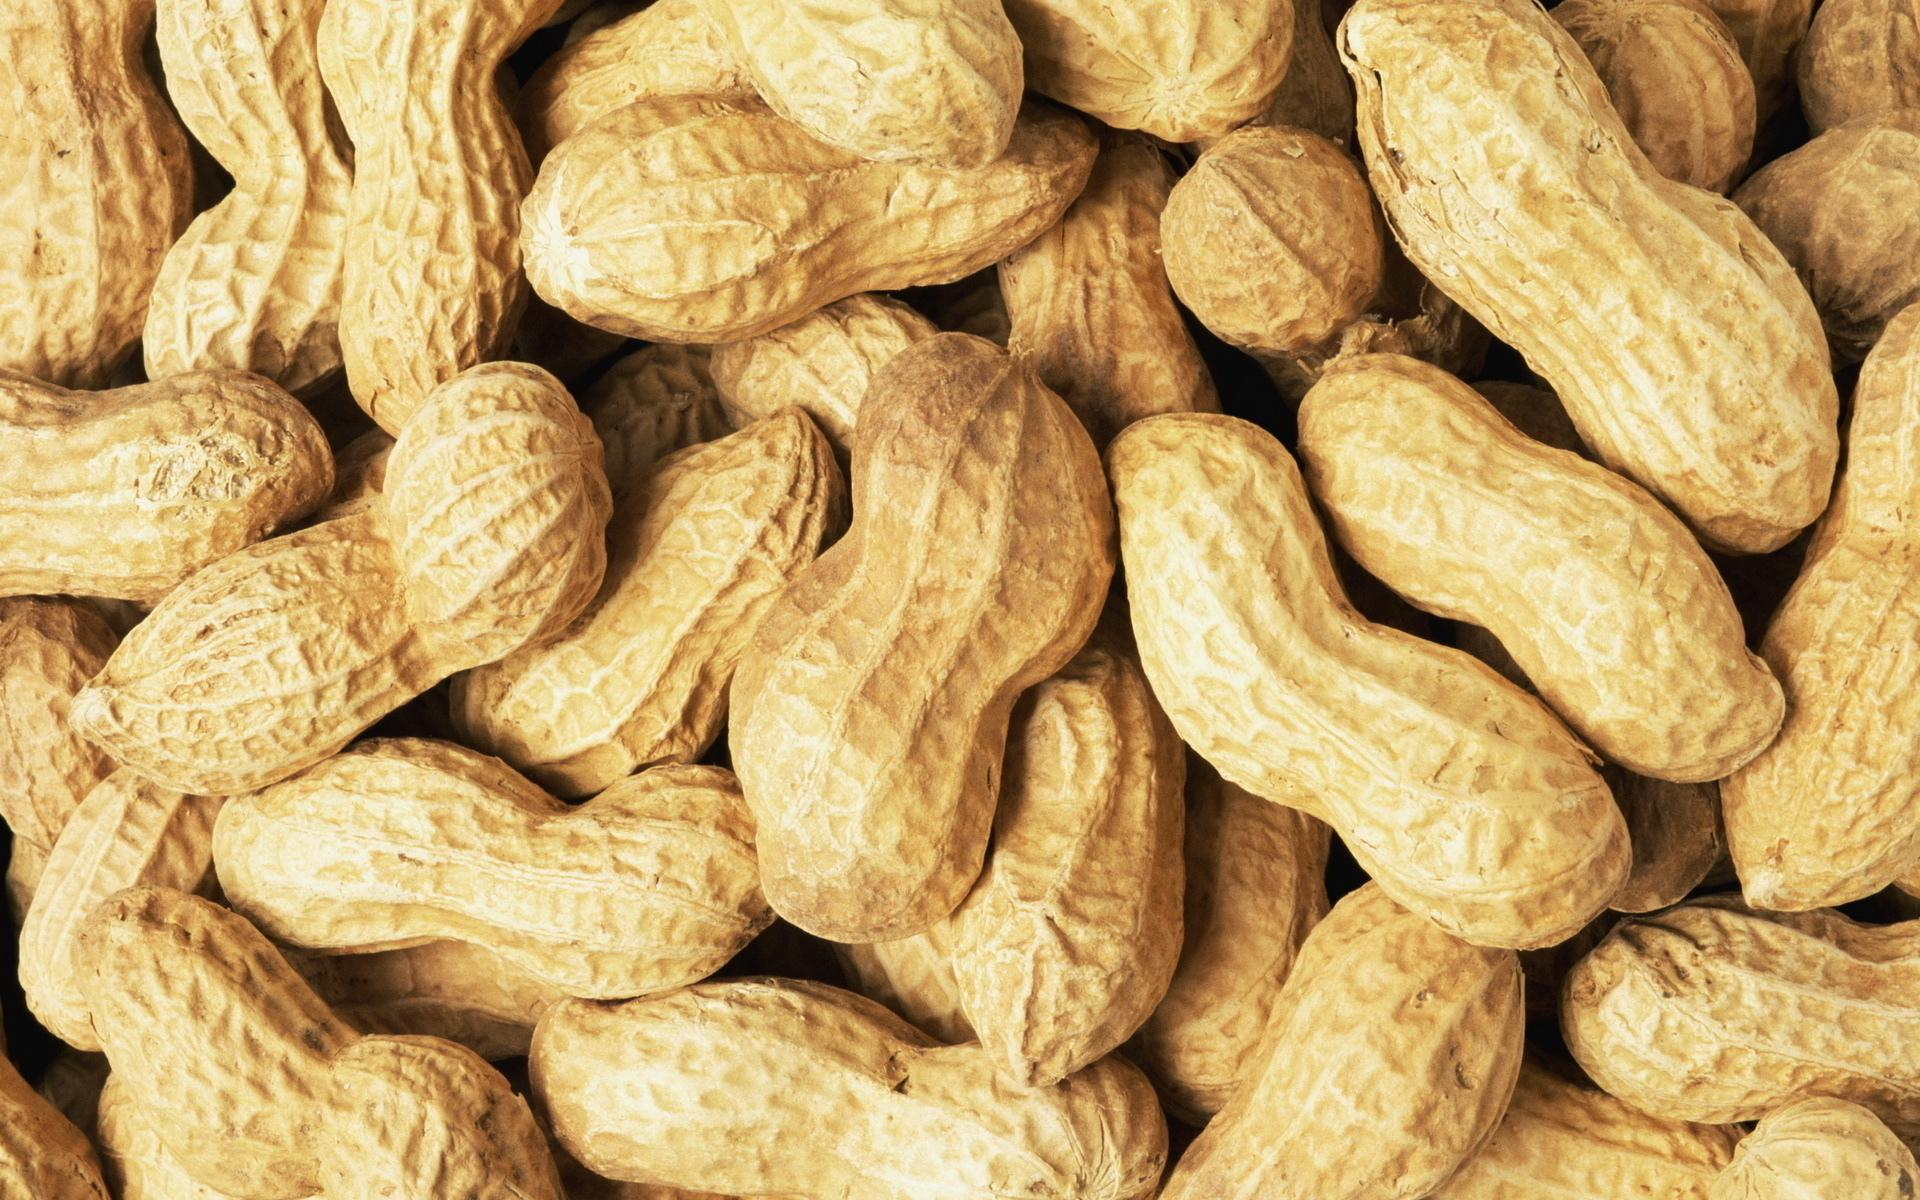 Peanut wallpapers HD quality